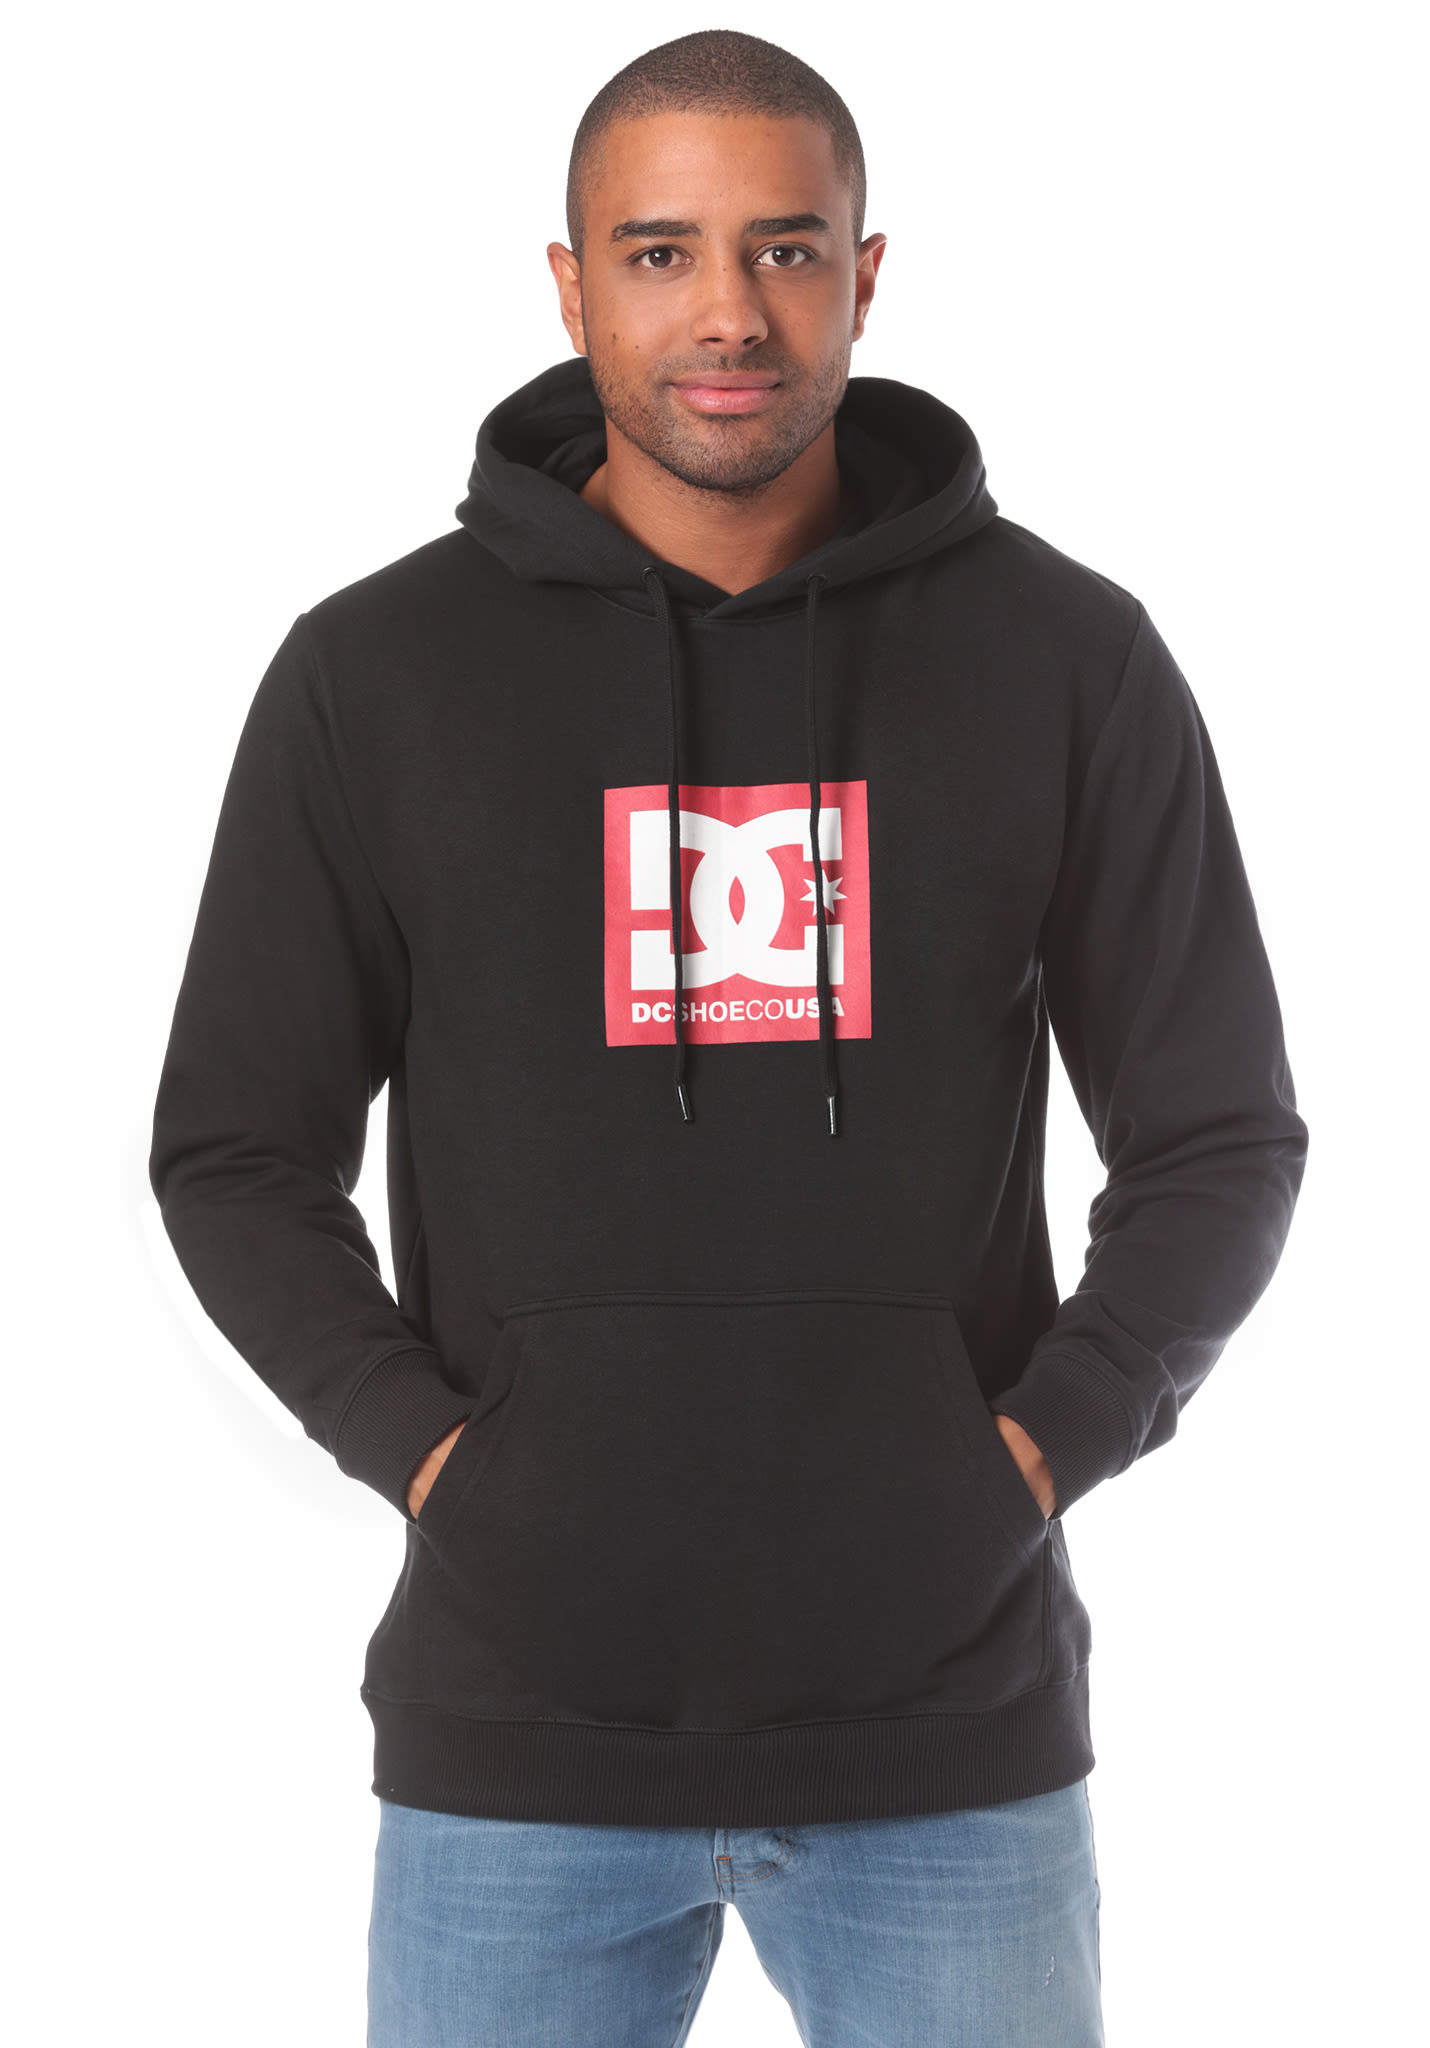 9aec065bff05 DC Square Star - Hooded Sweatshirt for Men - Black - Planet Sports